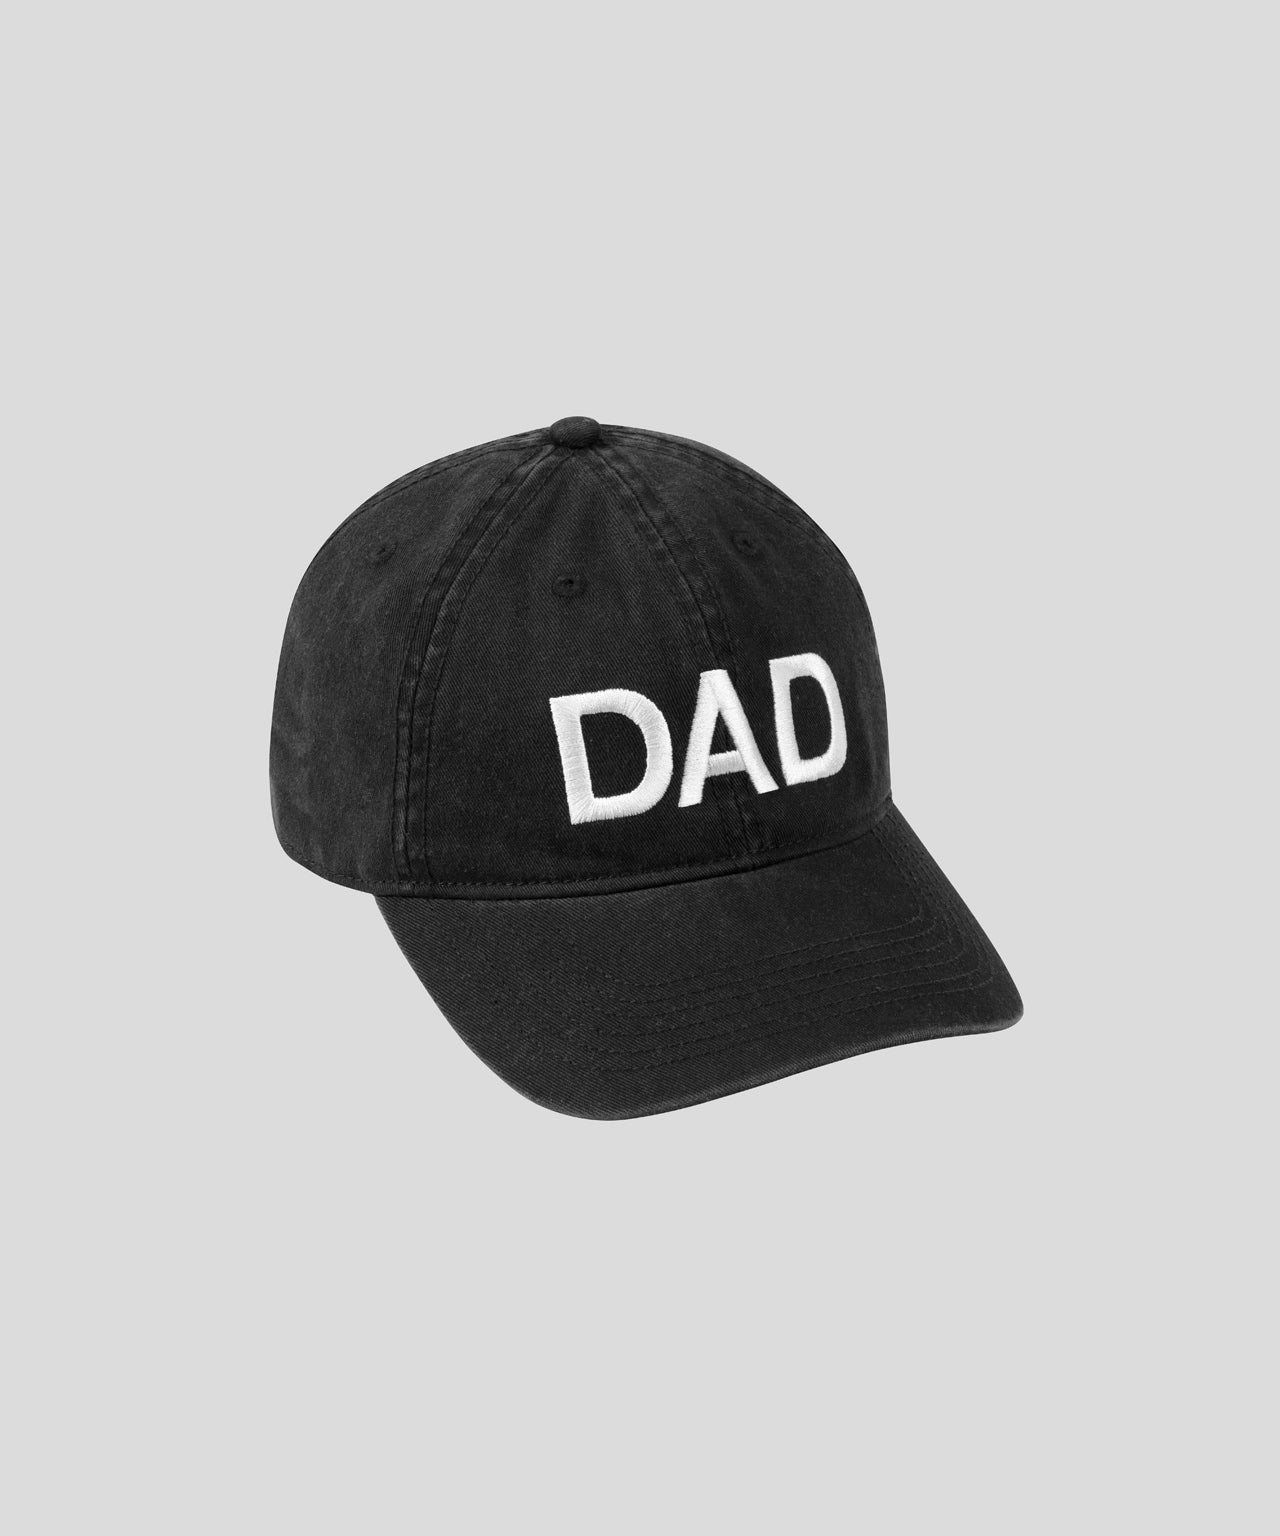 Coach Cap DAD - black